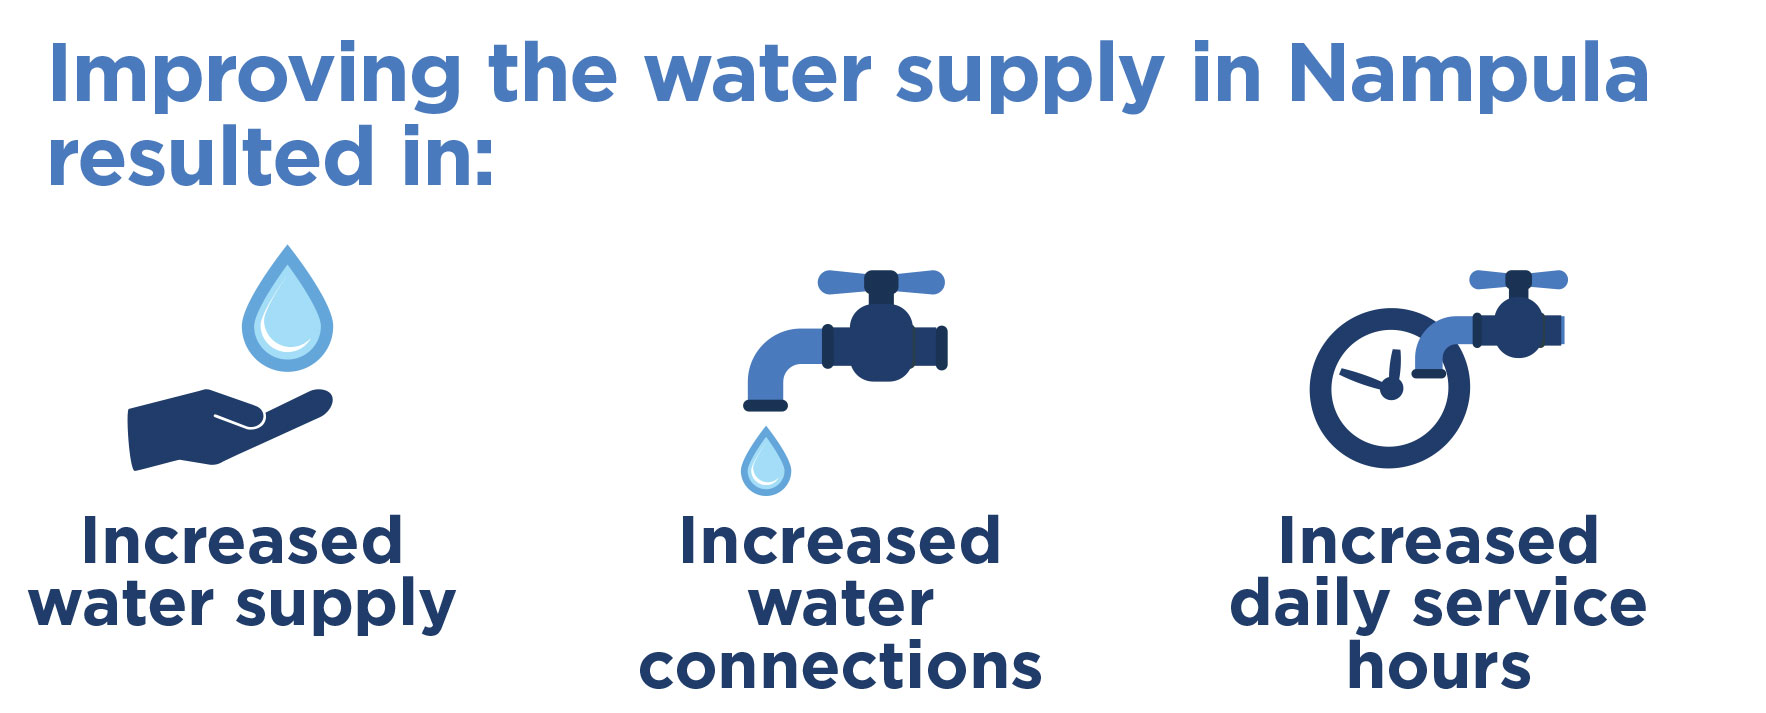 Graphic of results from improving  water supply in Nampula.